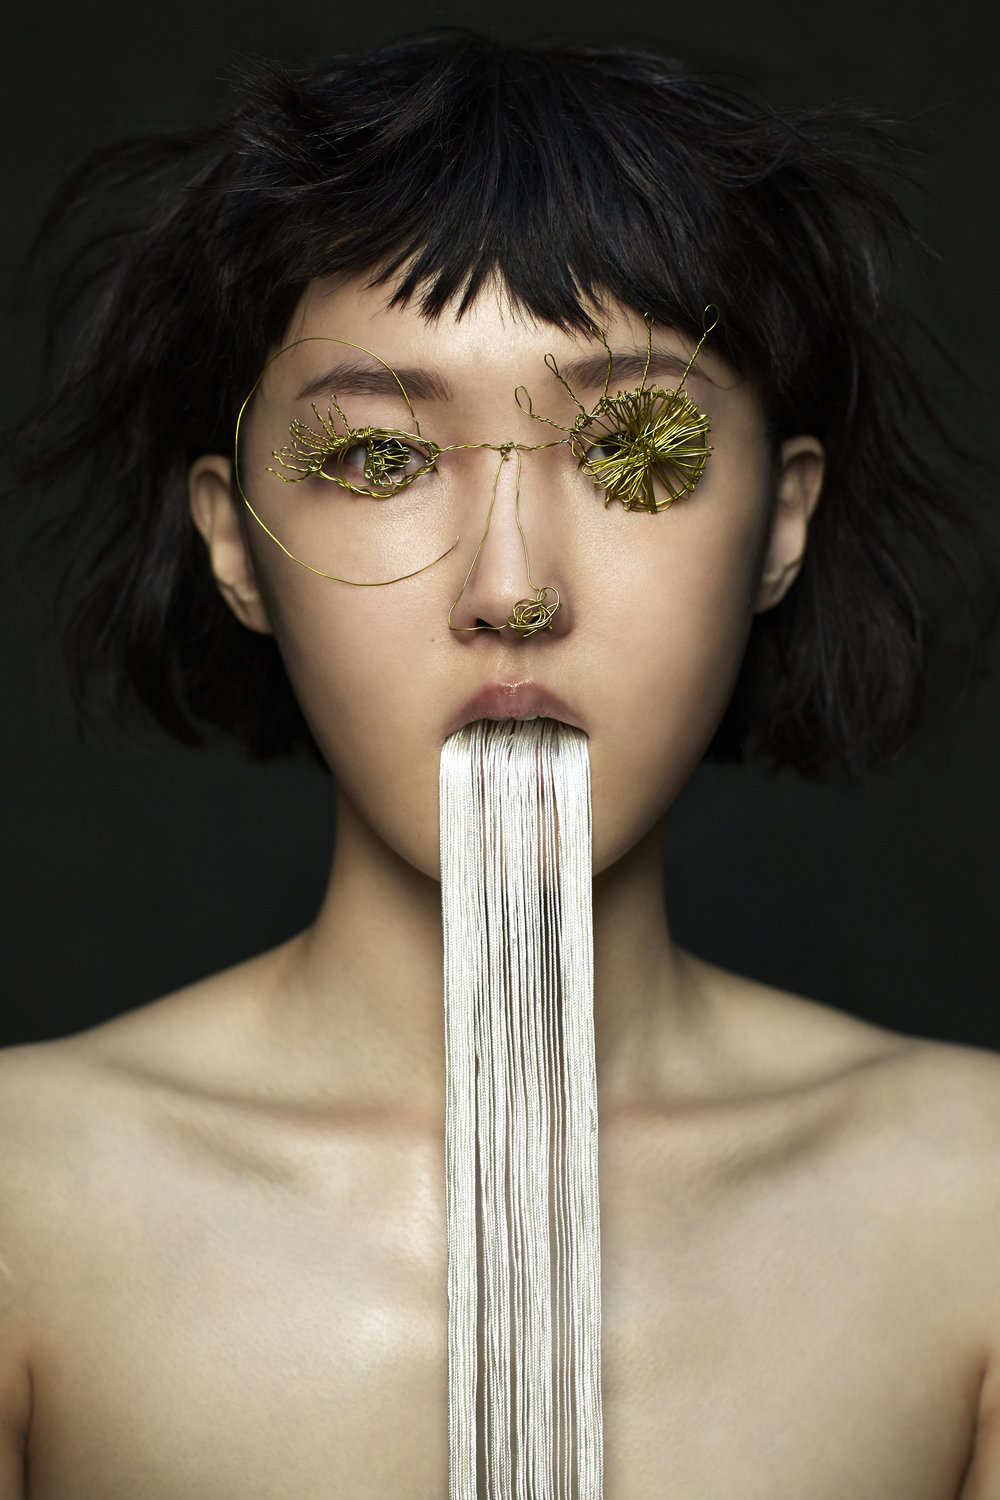 Model: Sujin Park  Make Up Artist: Caitlin Wooters  Hair Stylist: Akihisa Yamaguchi